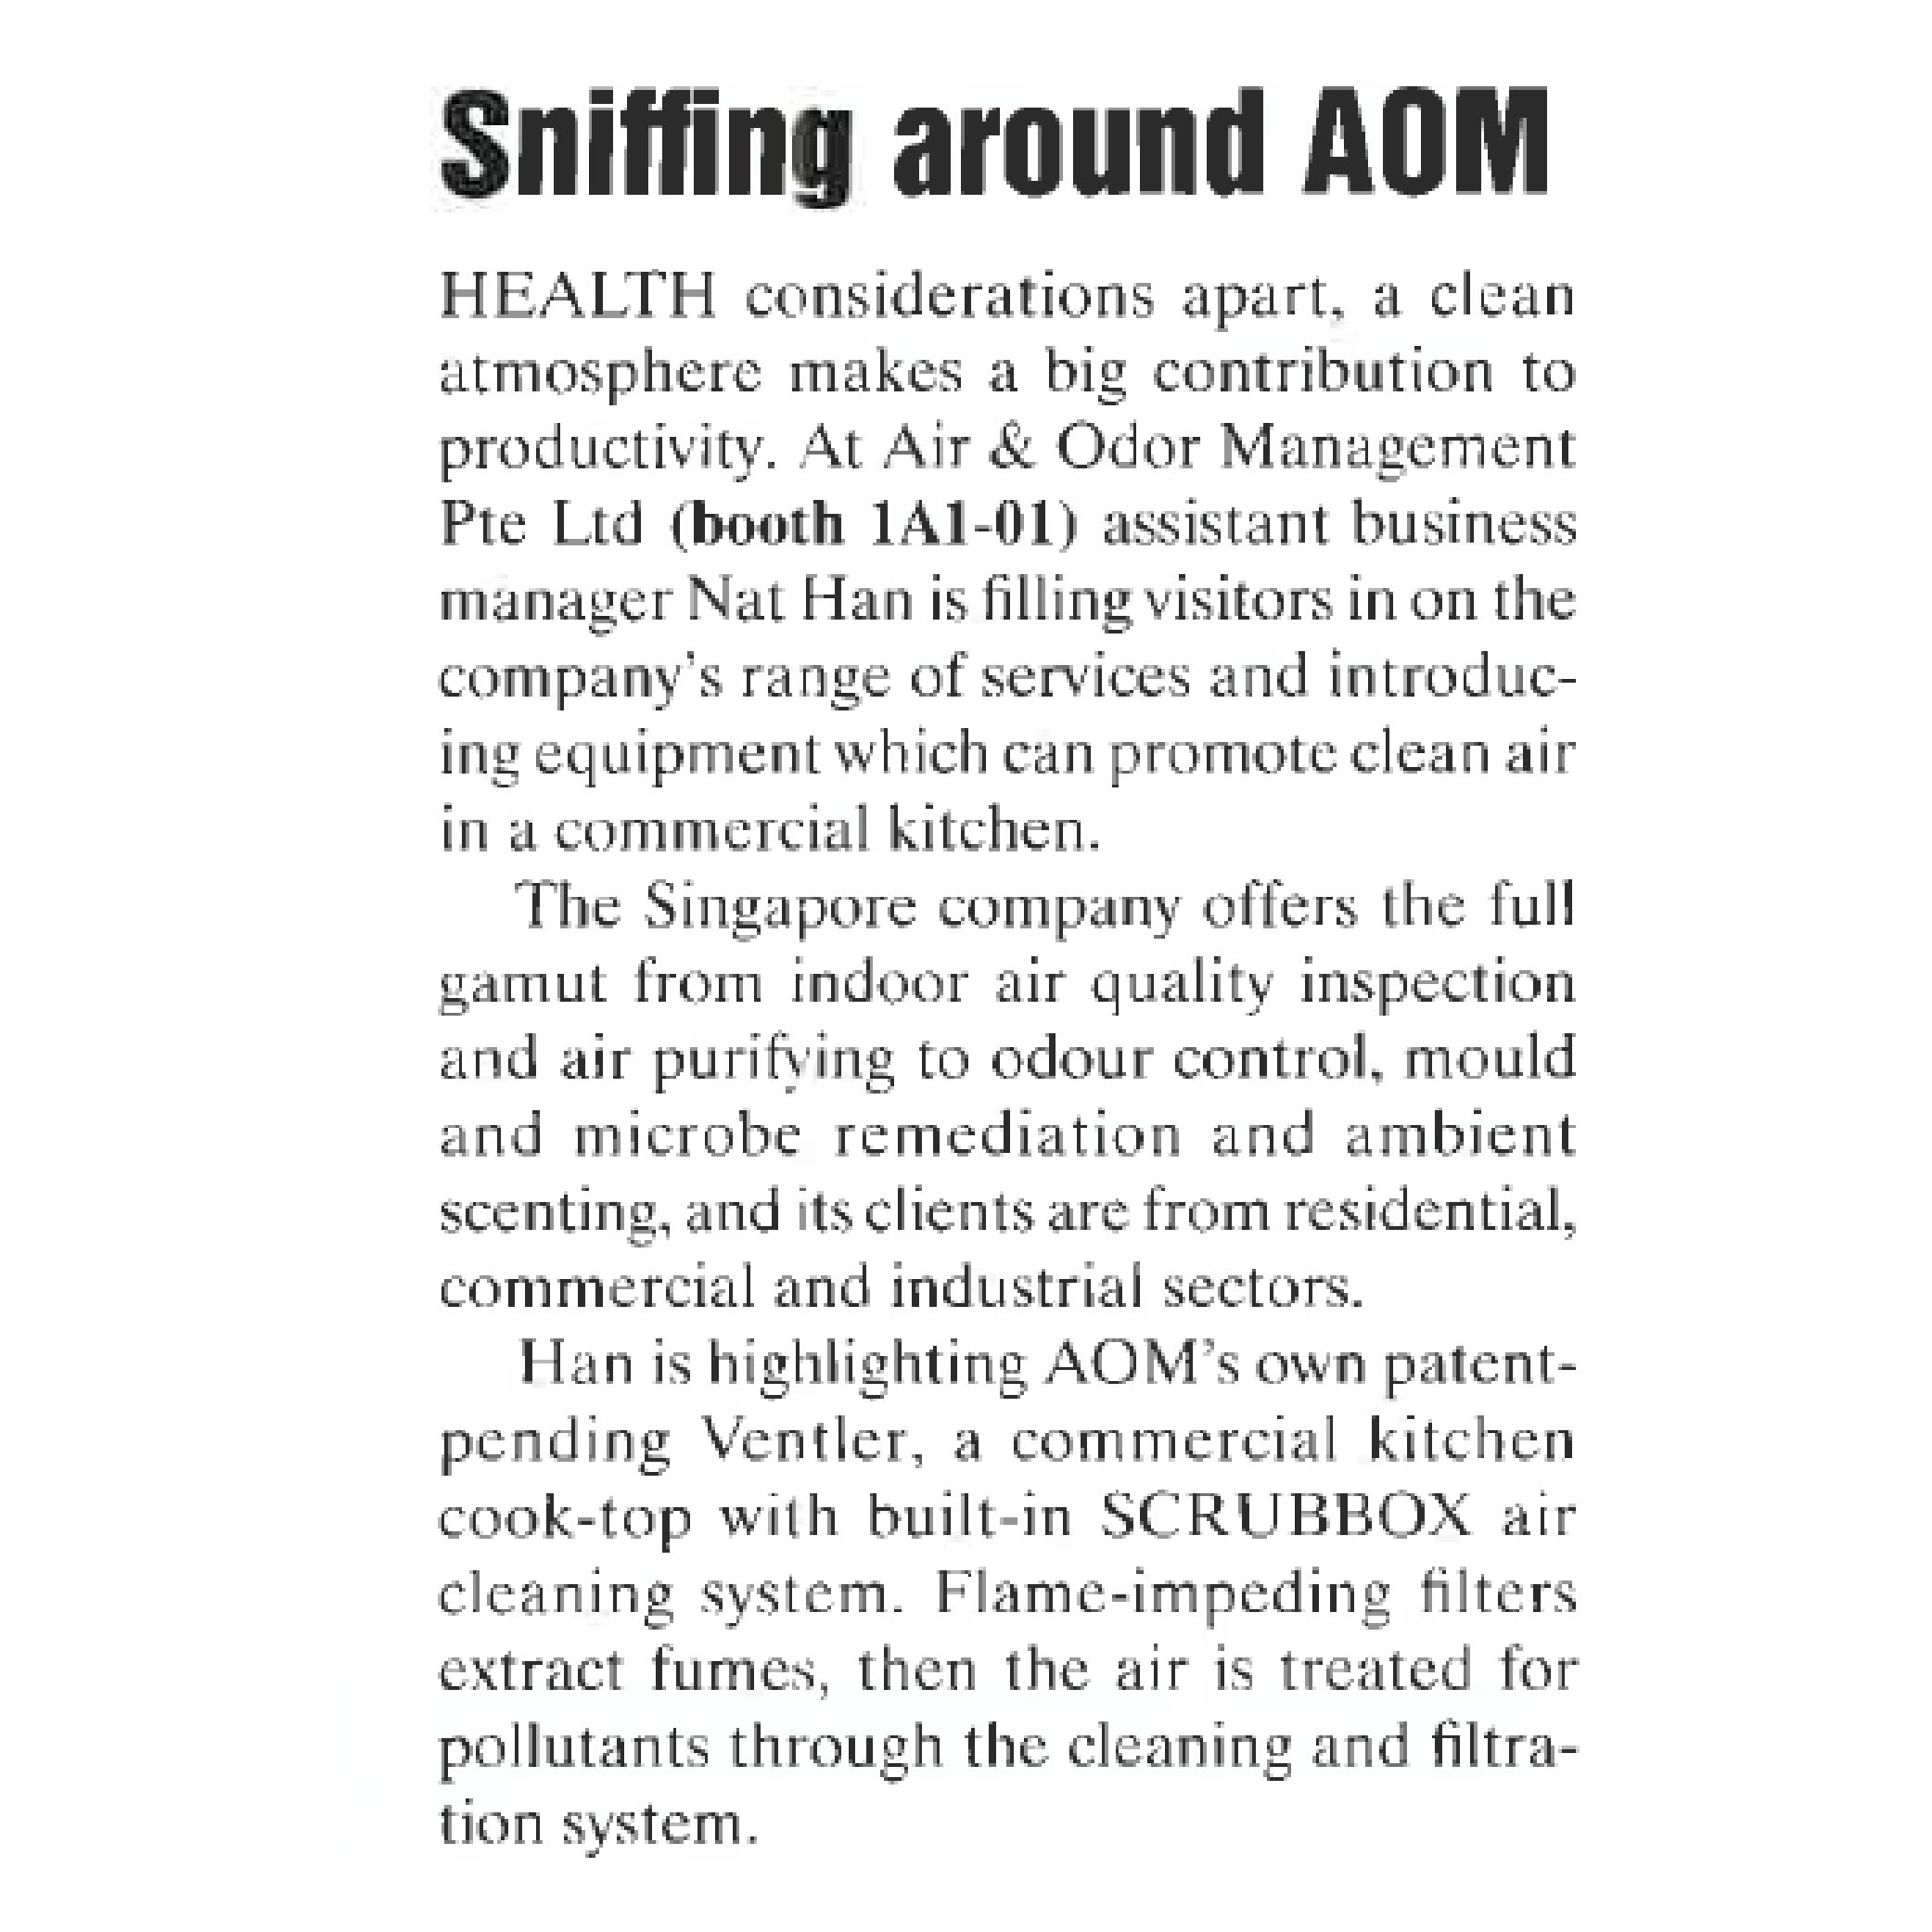 Article about AOM Air and Odor Management duting Food and Hotel Asia 2016